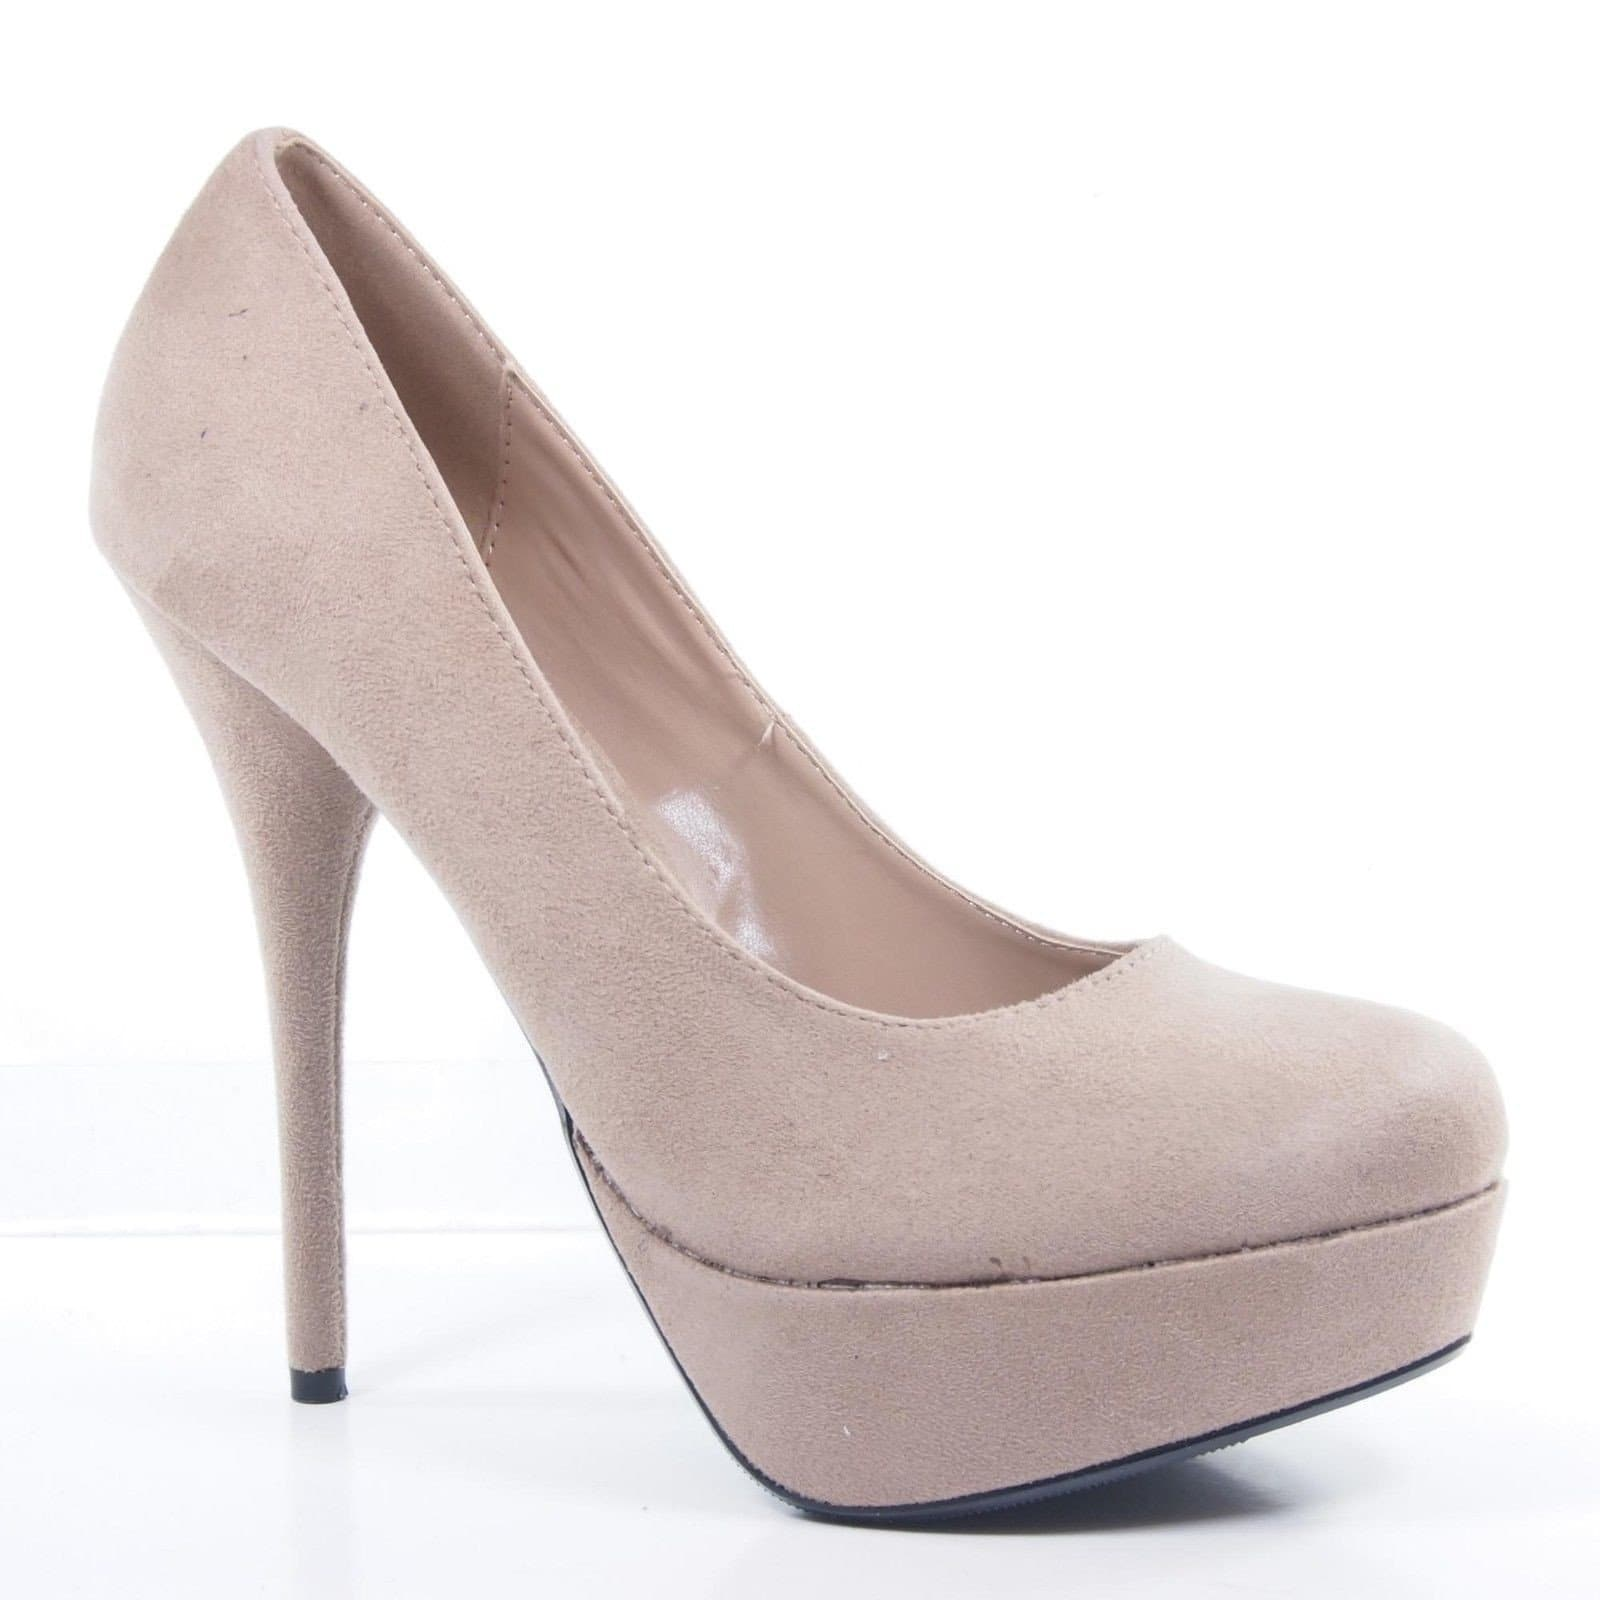 Jones By Delicious, Almond Toe Platform Stiletto Dress Formal Dance Special High Heel